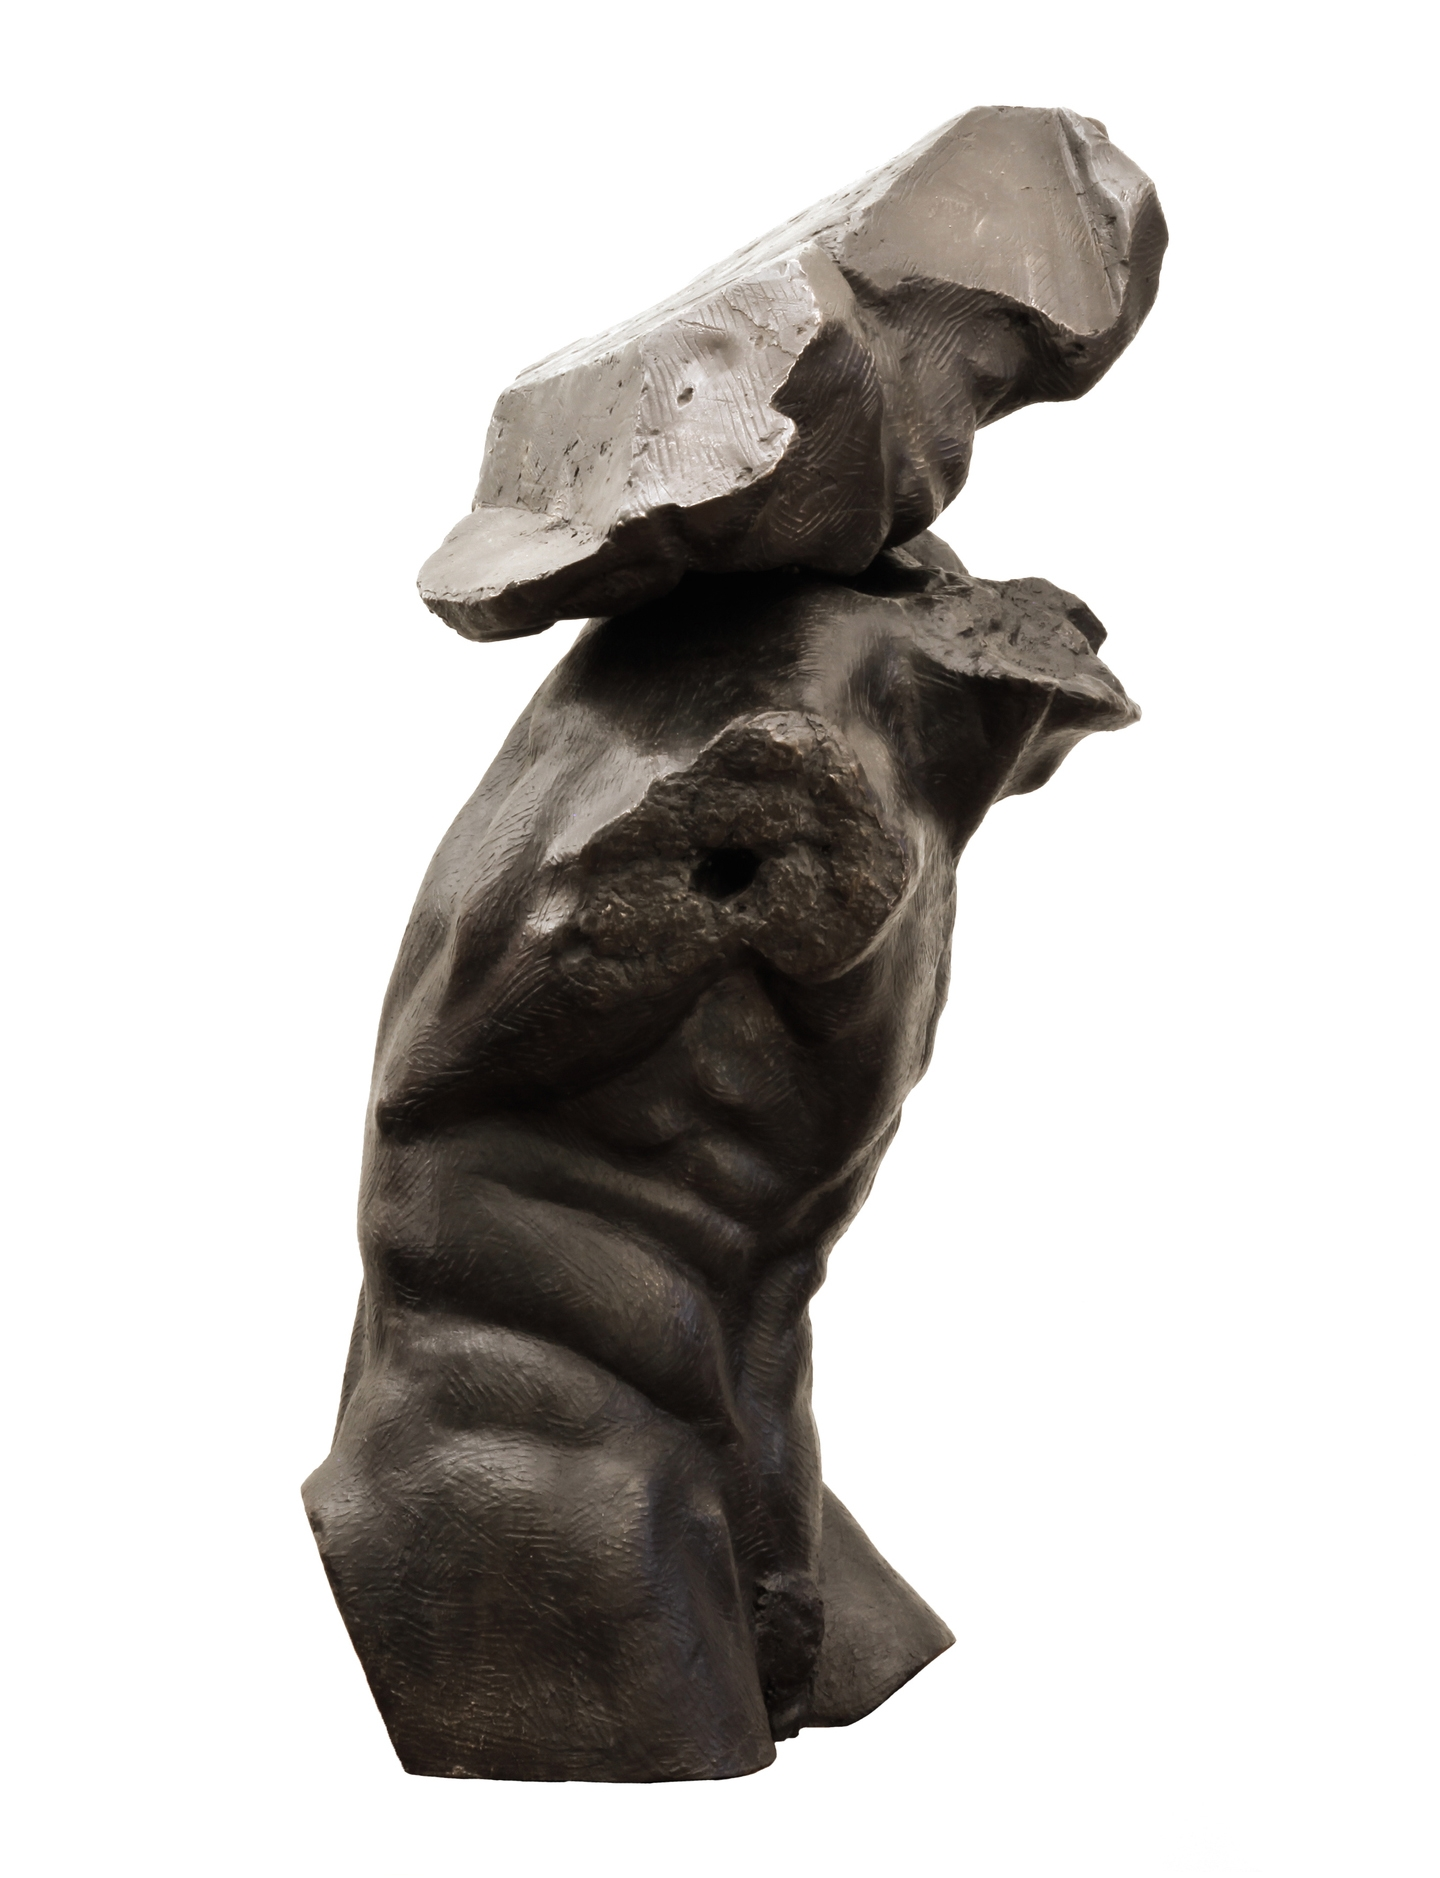 Sisyphus  , 2013, Bronze, Limited Edition of 7, 33 x 14 x 13 inches